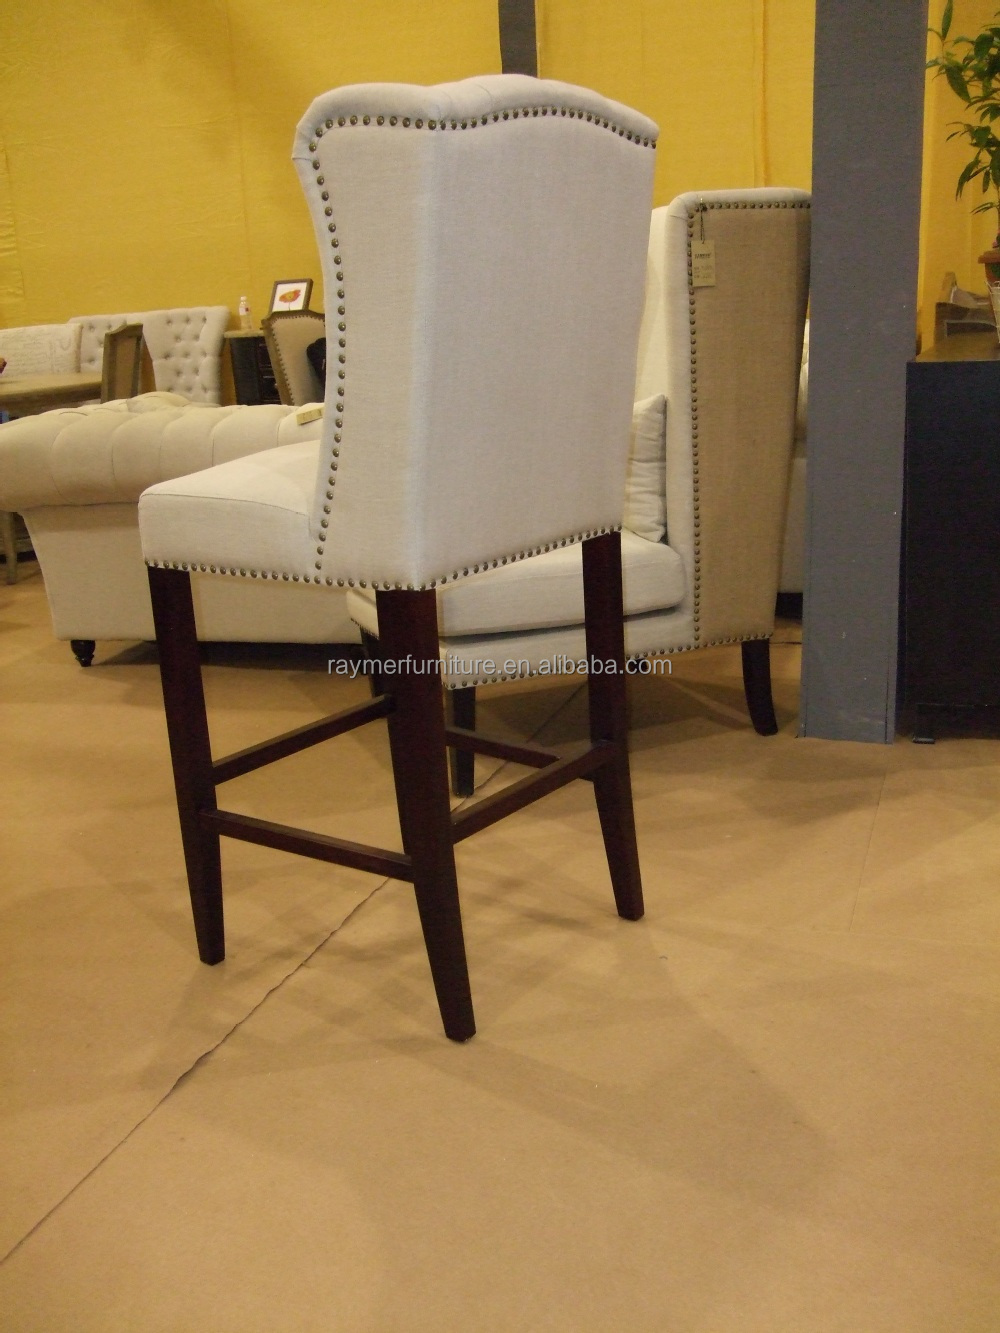 French Retro Style Tufted Wing Back Antique Bar Stools